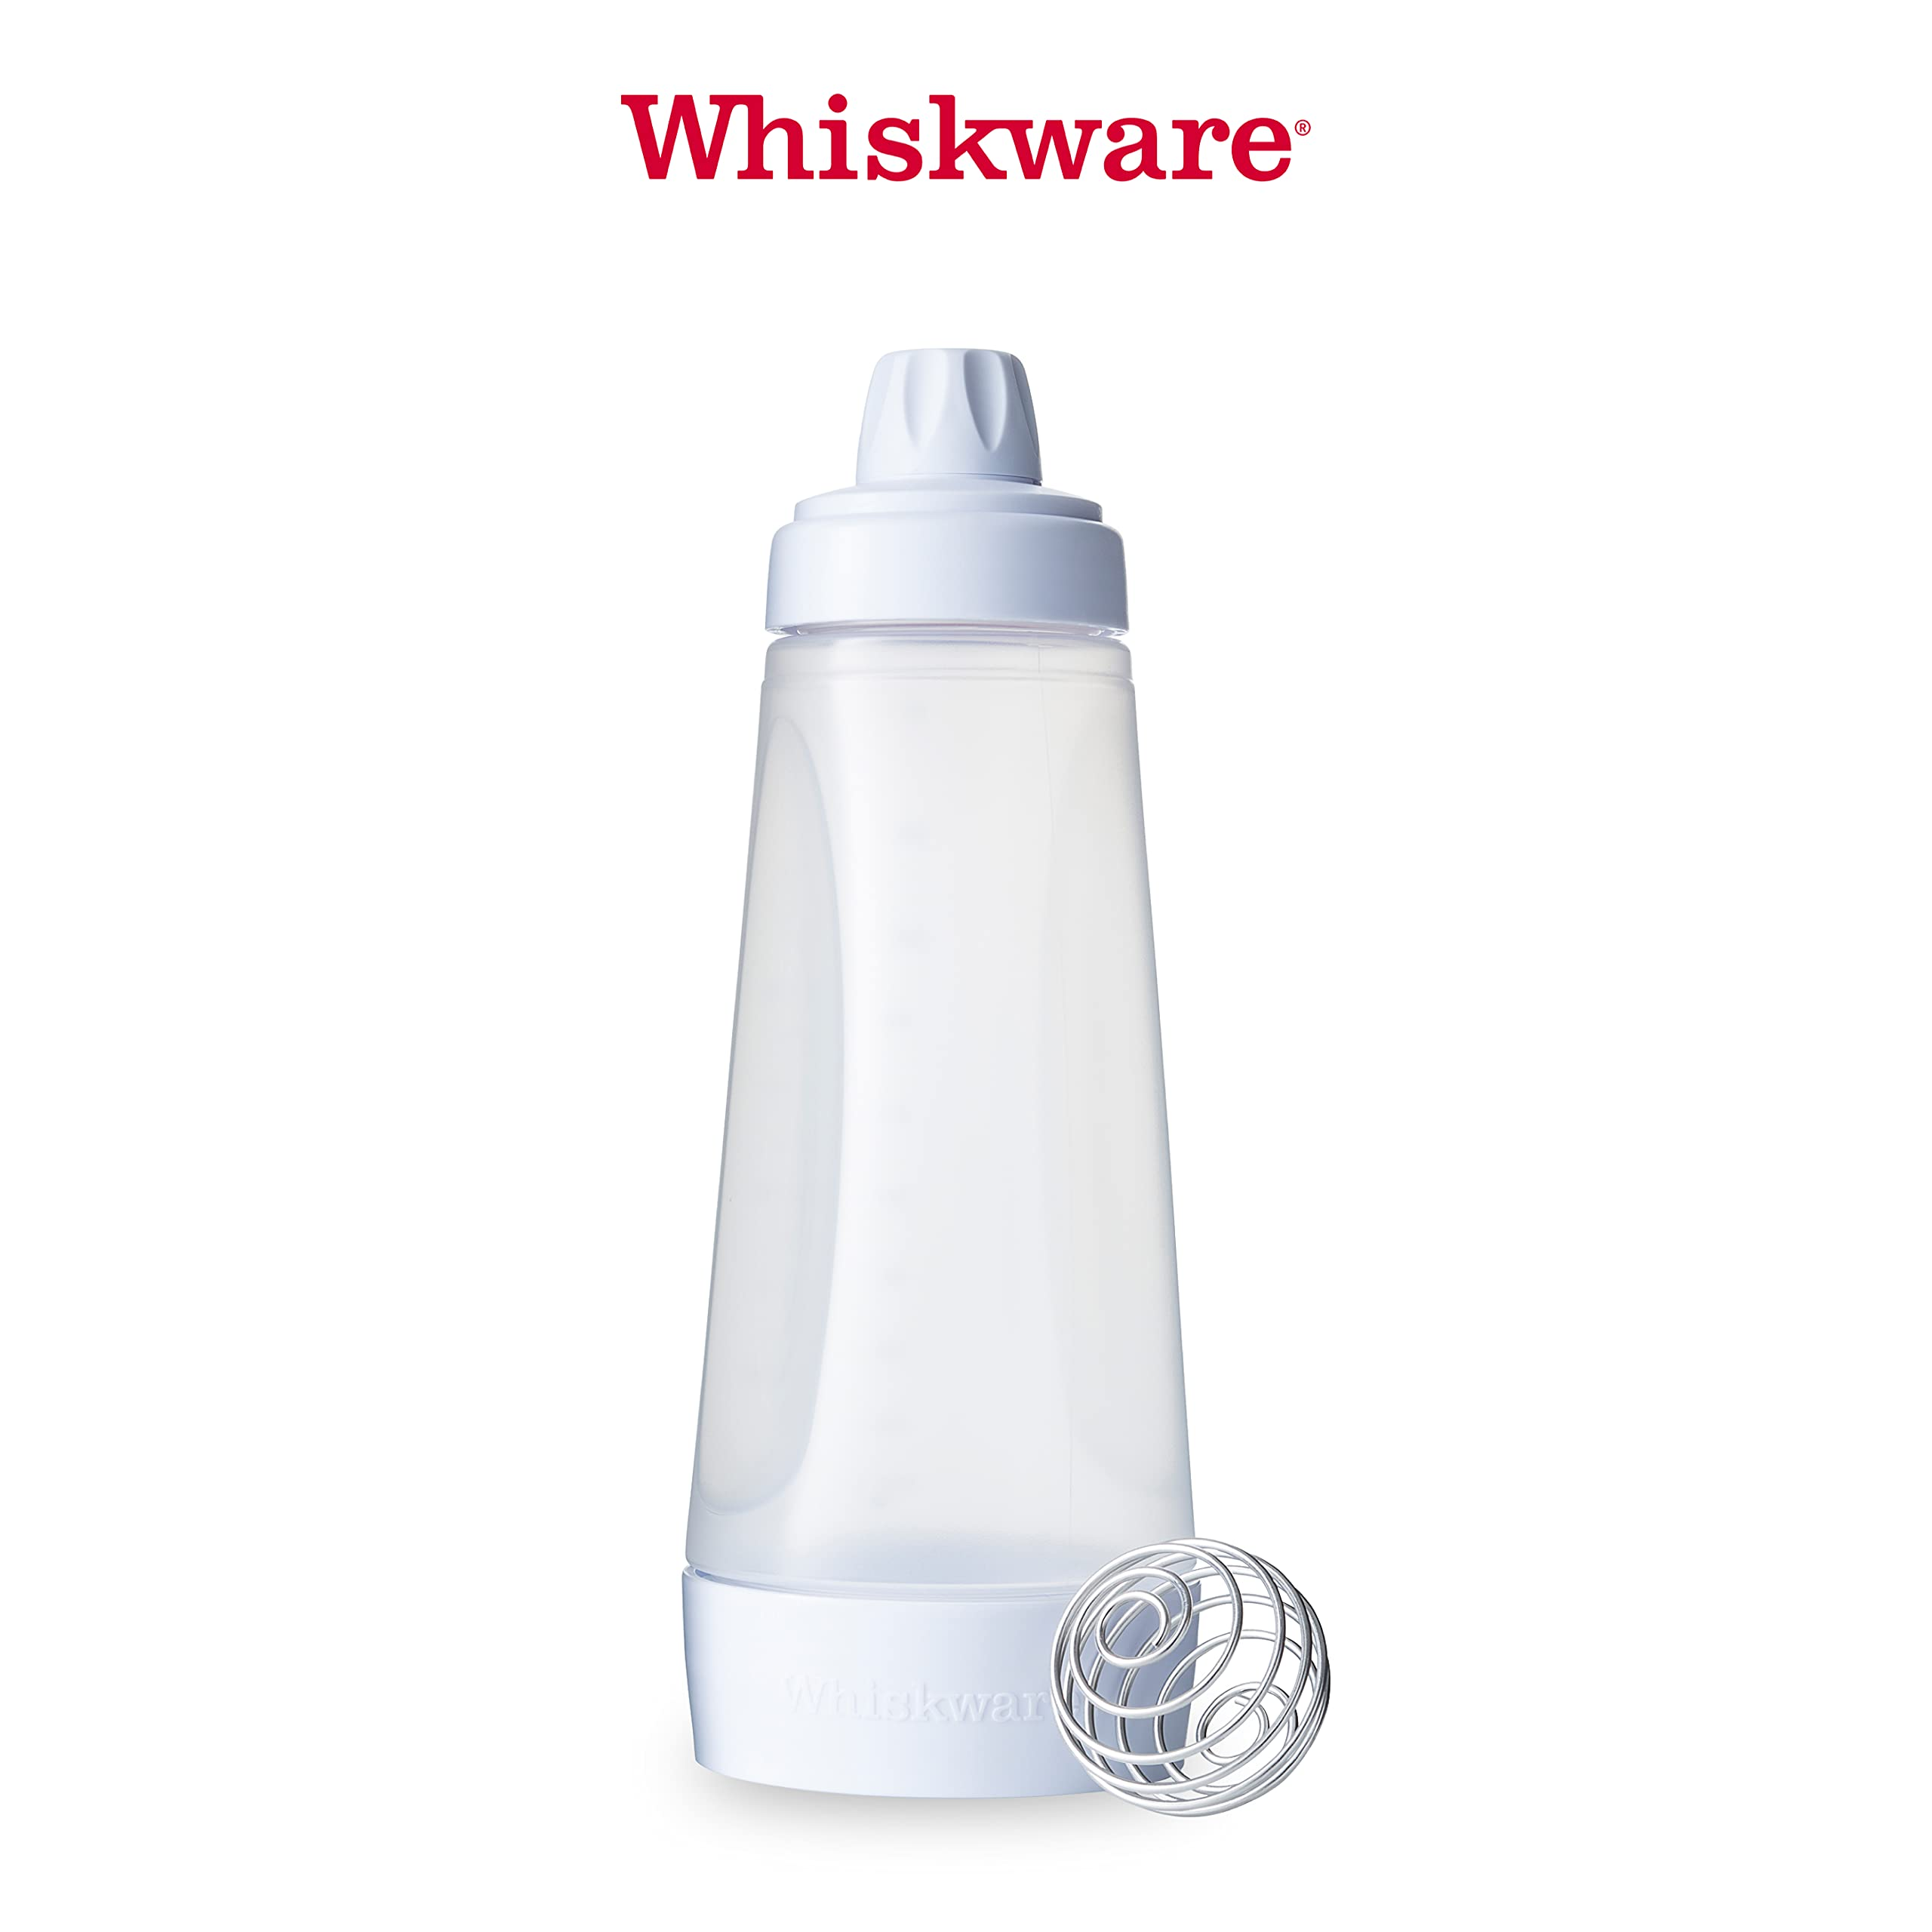 Details about  /Whiskware Pancake Batter Mixer with BlenderBall Wire Whisk